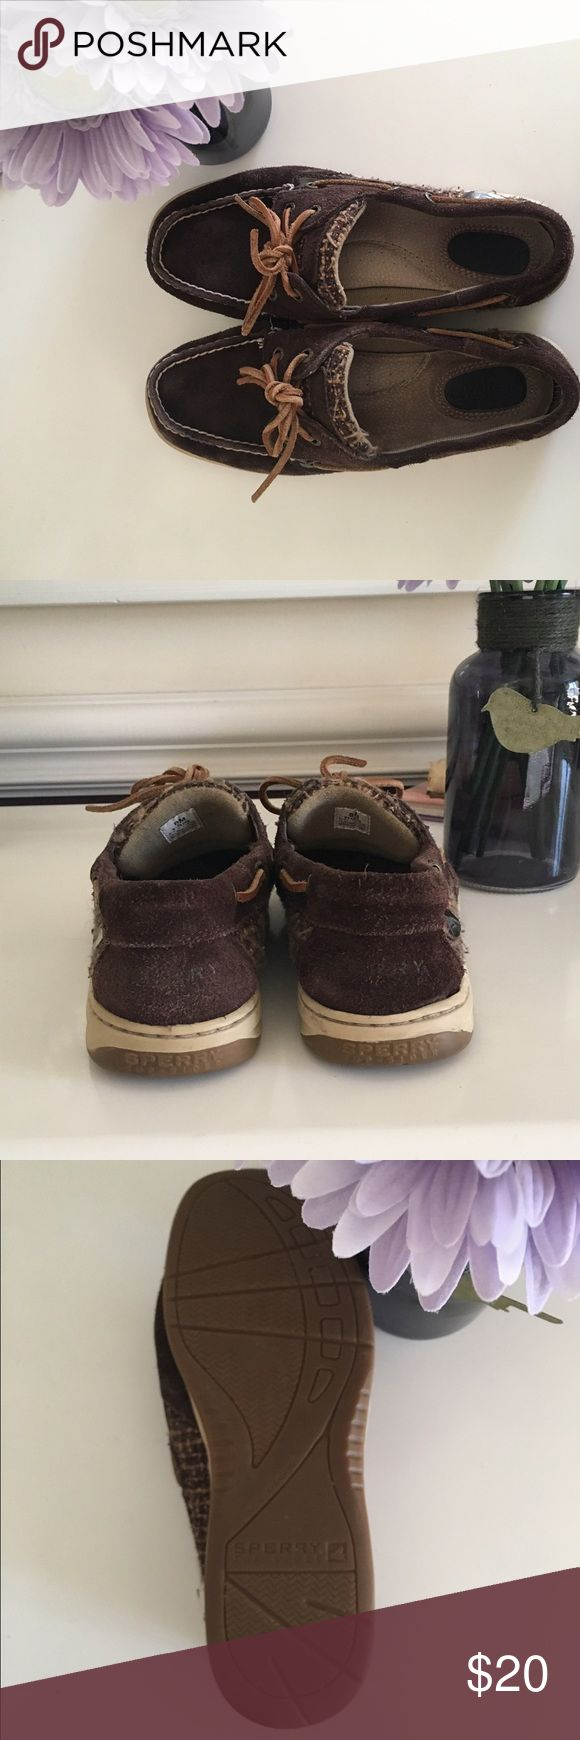 Brown suede Sperry shoe These Suede Sperry shoes have only been worn a few times. They look great wth jeans in the winter ❄️ Sperry Shoes Flats & Loafers